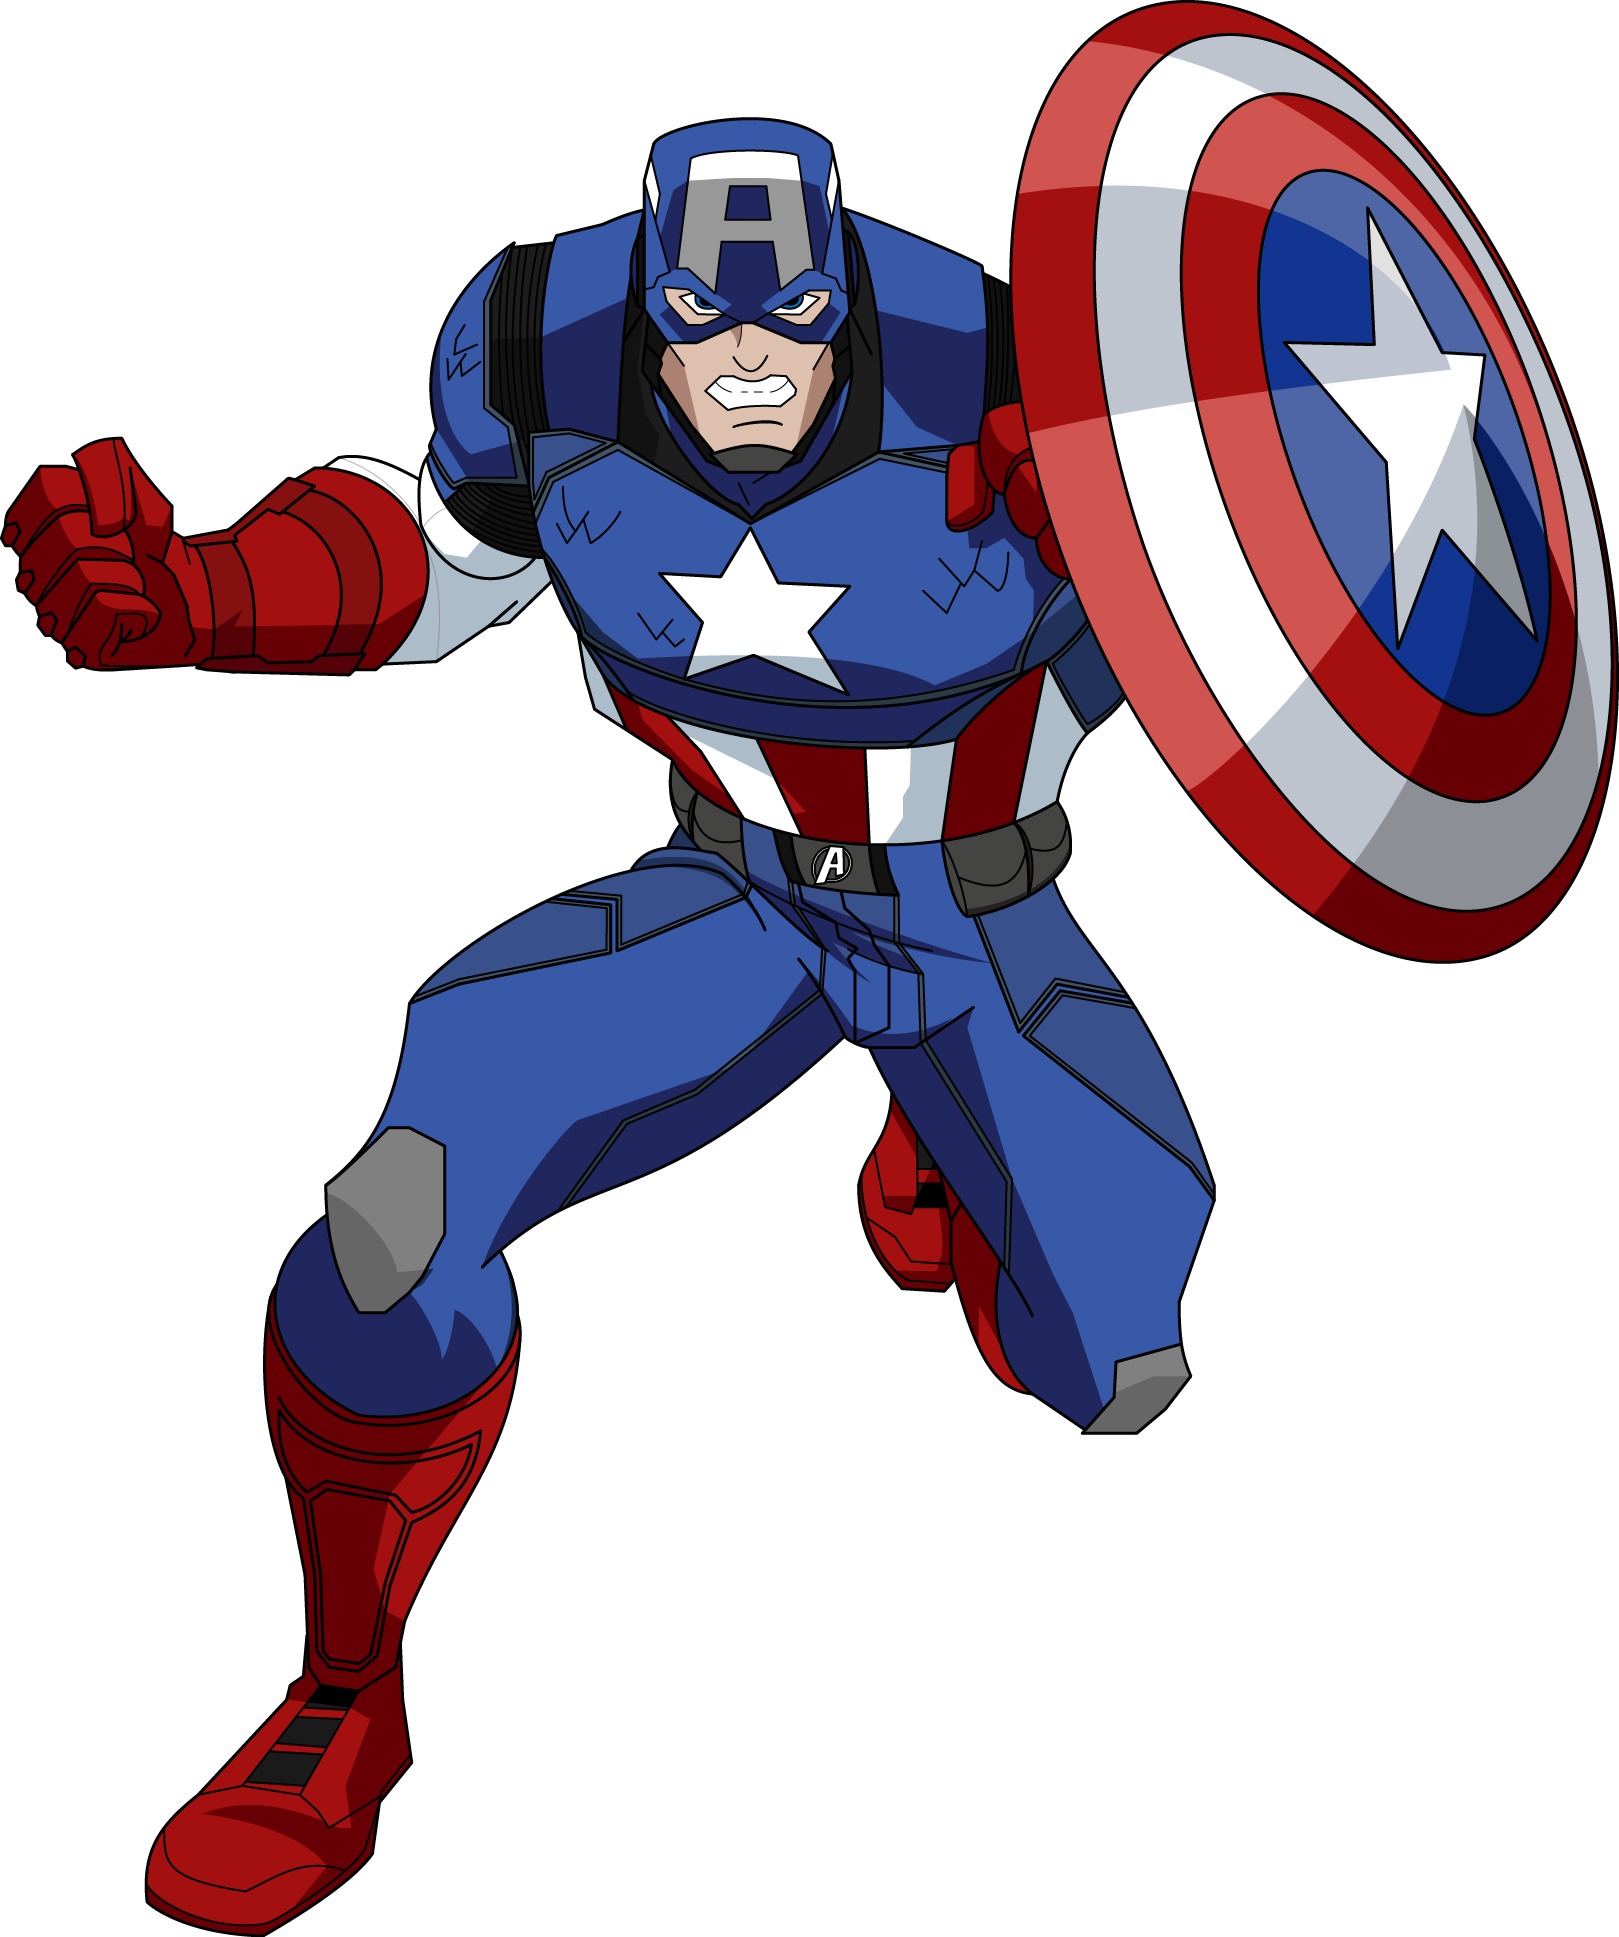 Free high resolution comic book clipart svg transparent download Captain America PNG Image - PurePNG | Free transparent CC0 PNG Image ... svg transparent download